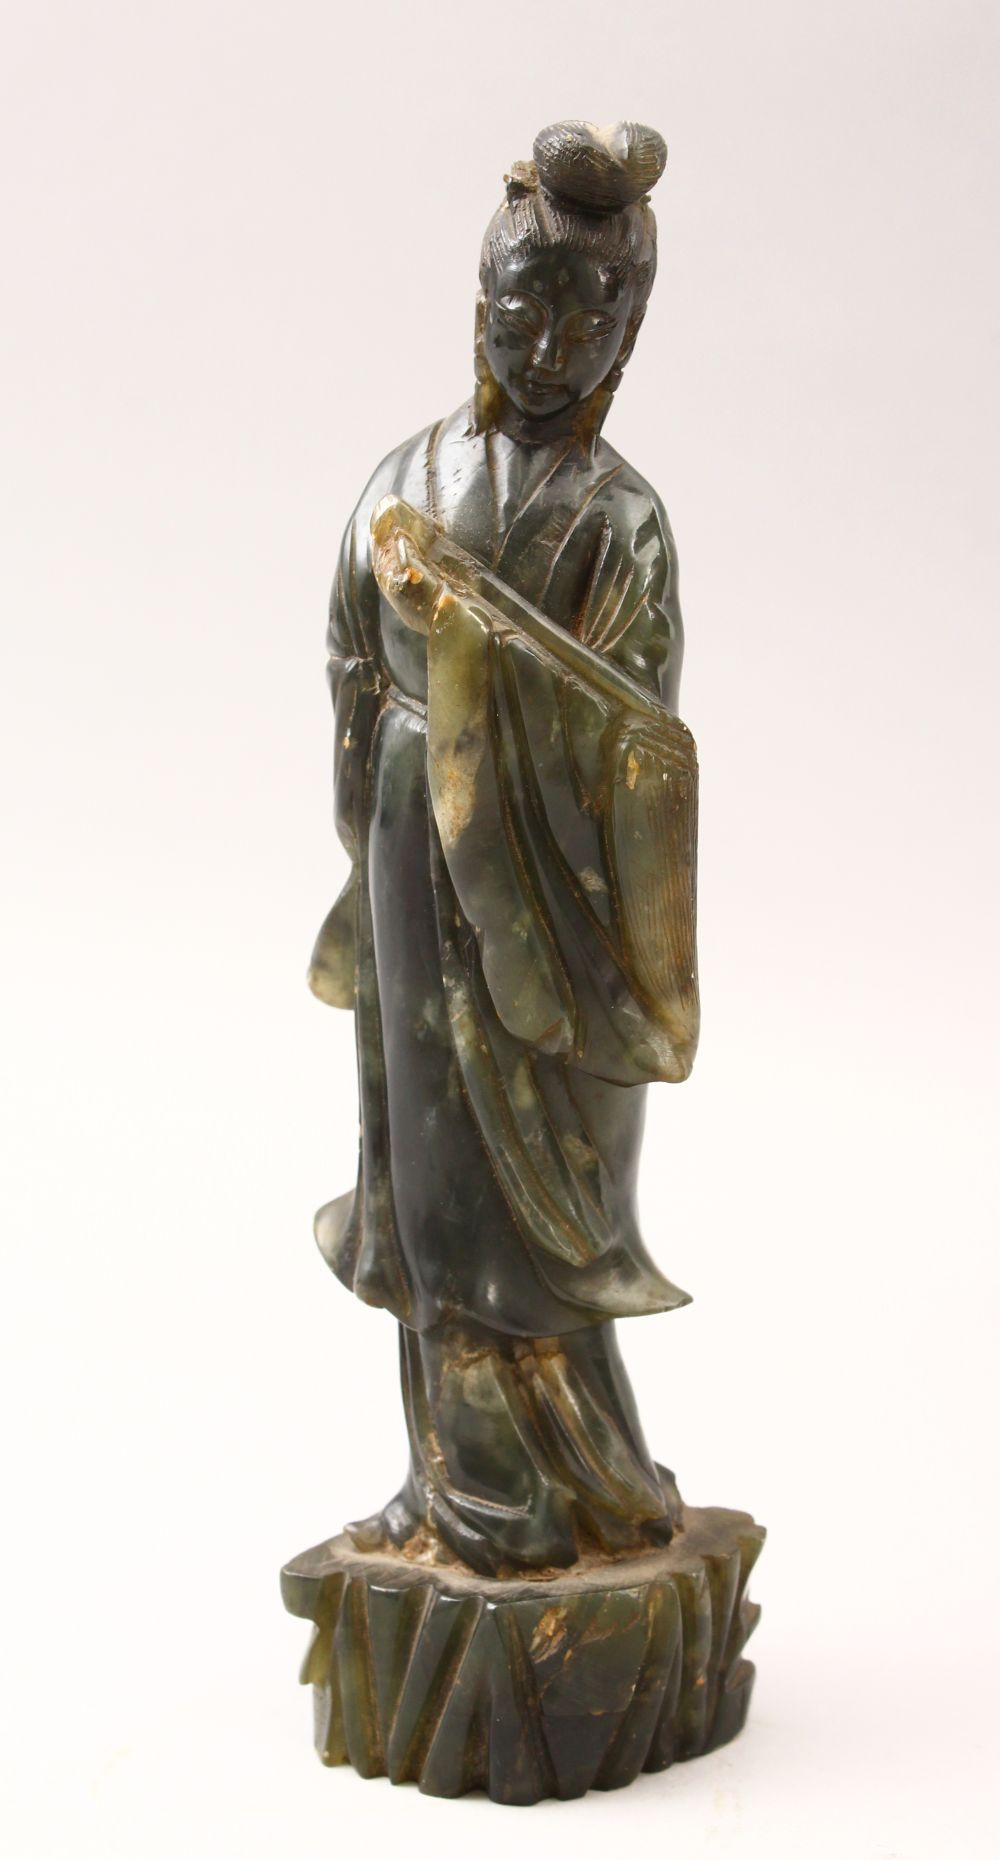 A 20TH CENTURY CHINESE CARVED JADE FIGURE OF GUANYIN, stood upon a stylized stump base holding a